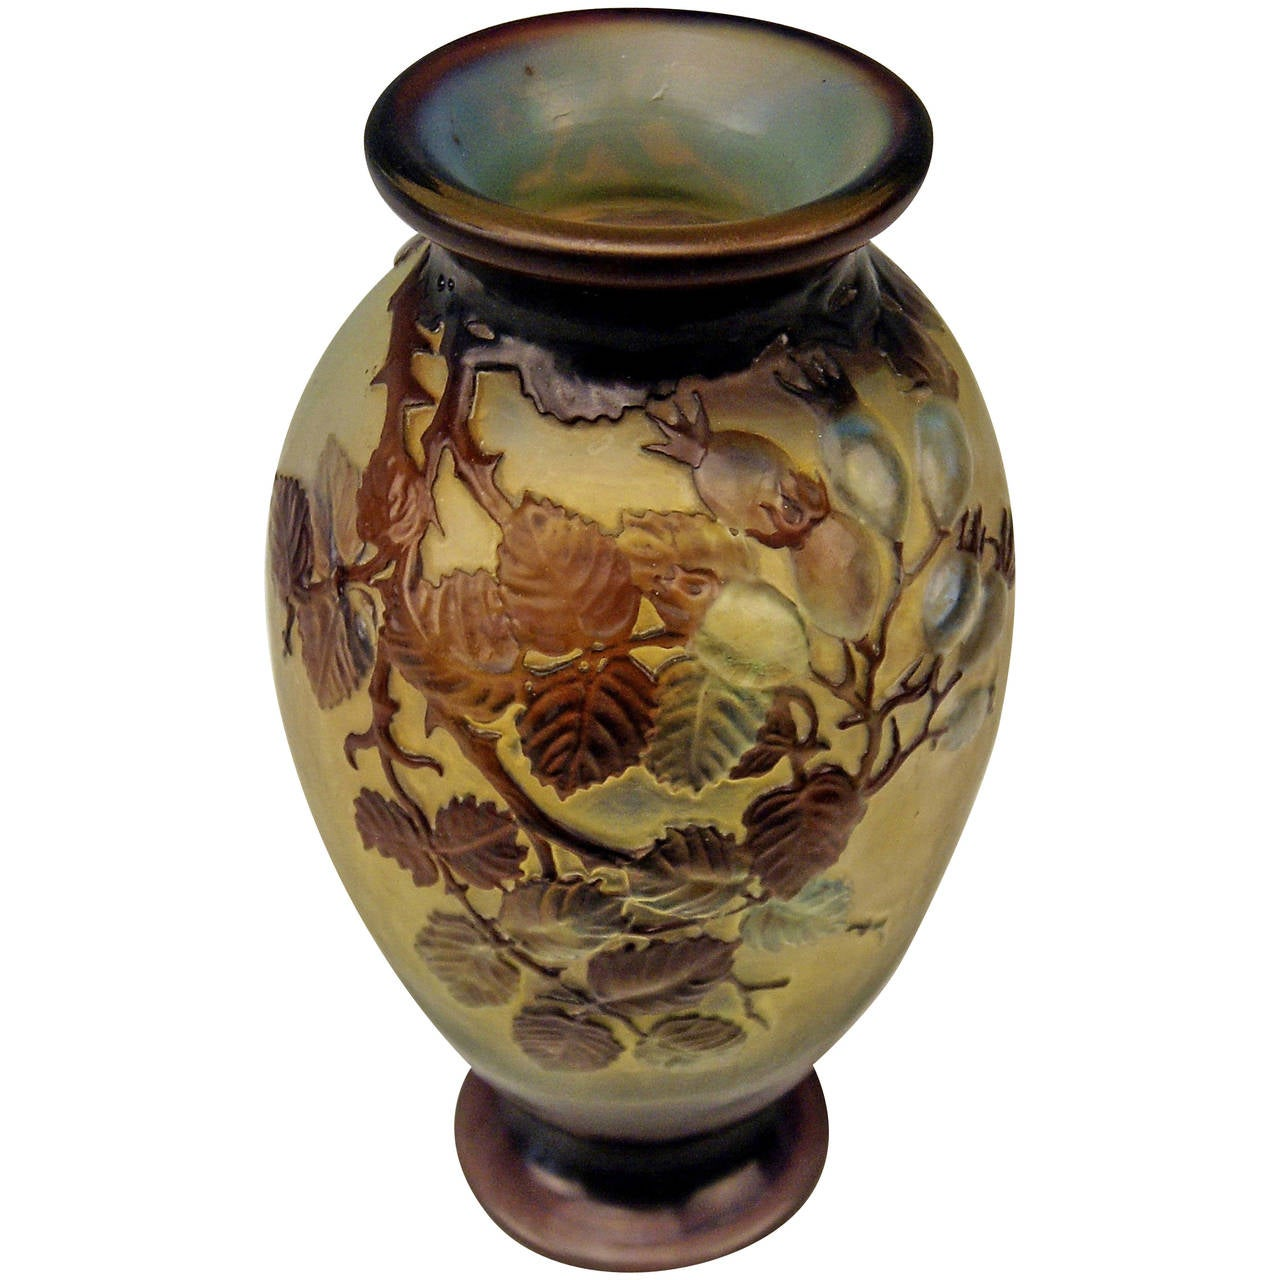 Emile Galle Soufflé Vase Gallé Nancy Art Nouveau Wild Rose France c.1925 For Sale